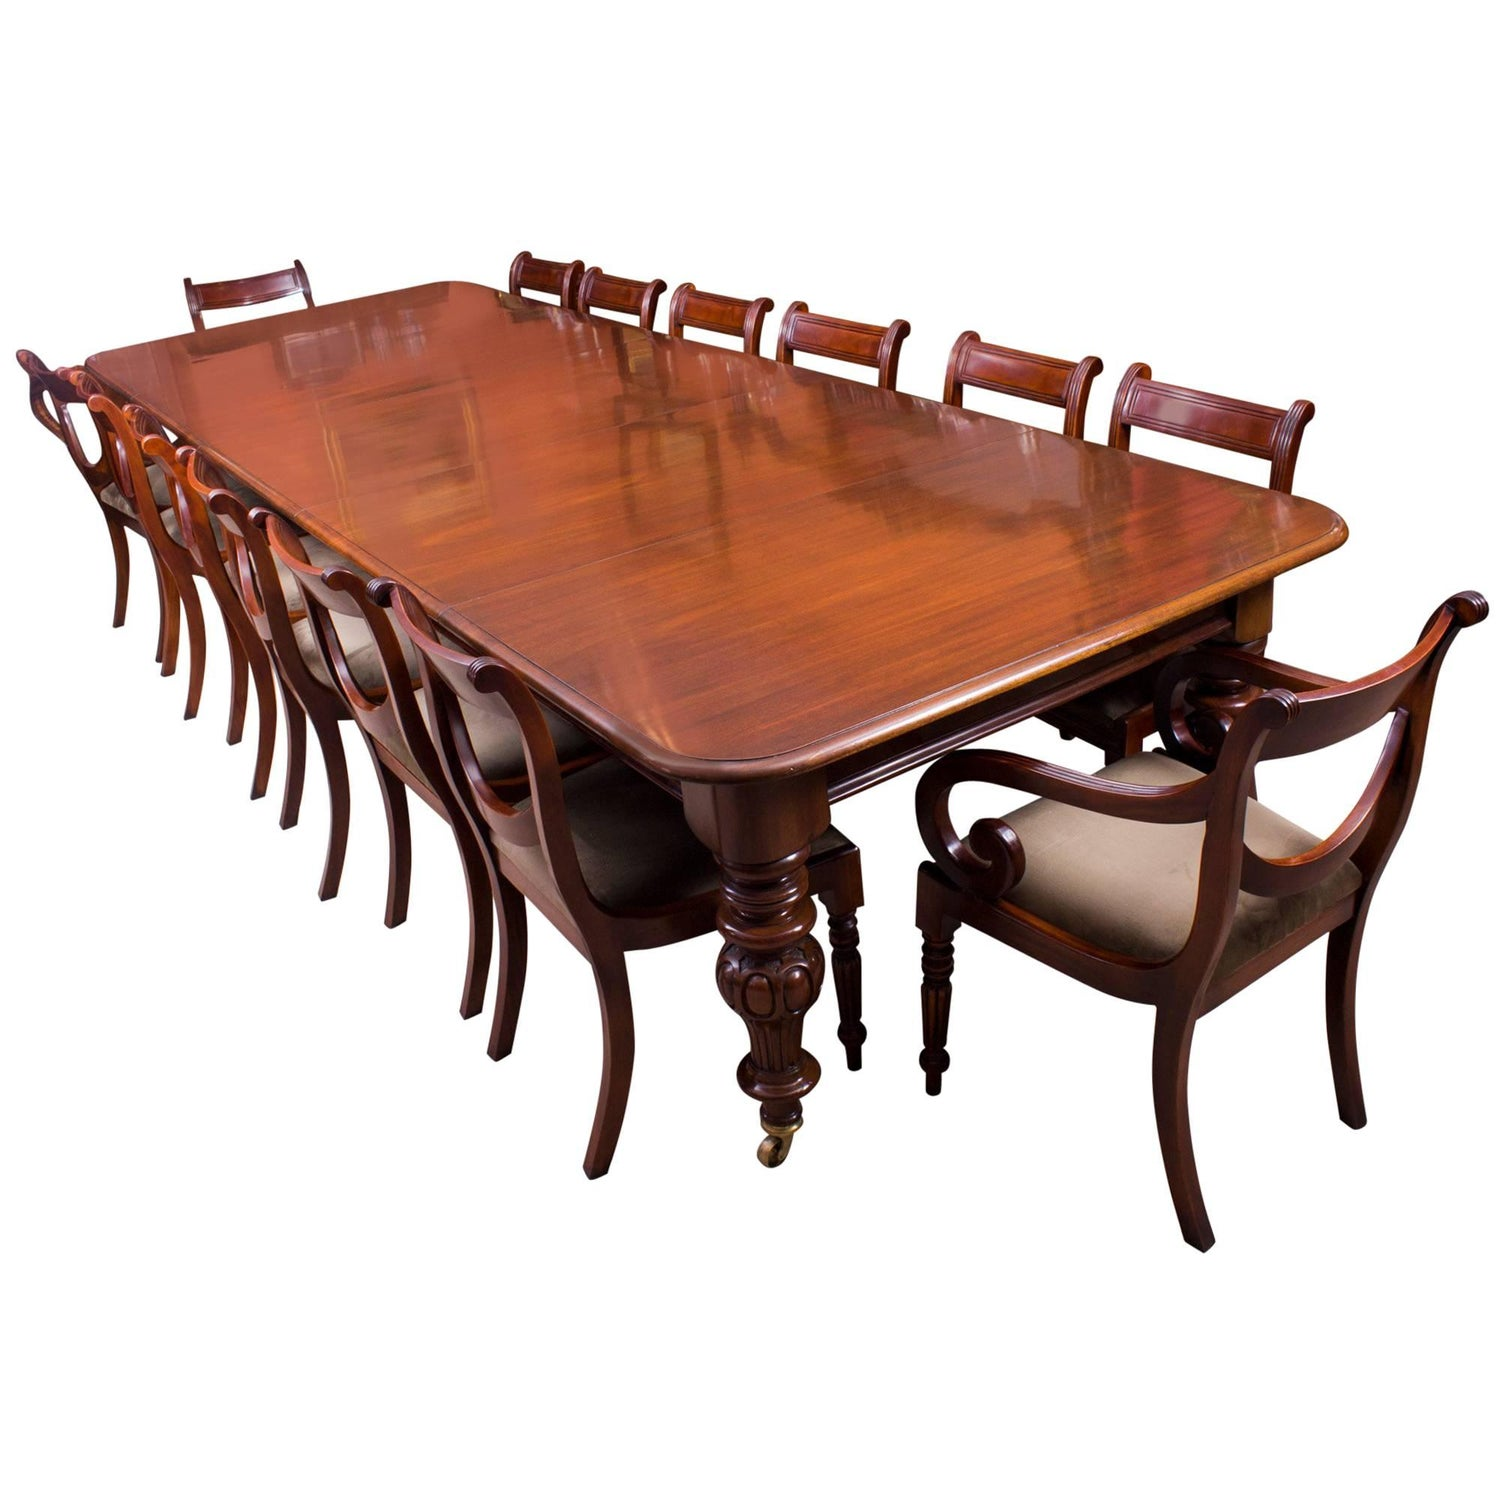 Antique Victorian Flame Mahogany Dining Table and 14 Chairs circa